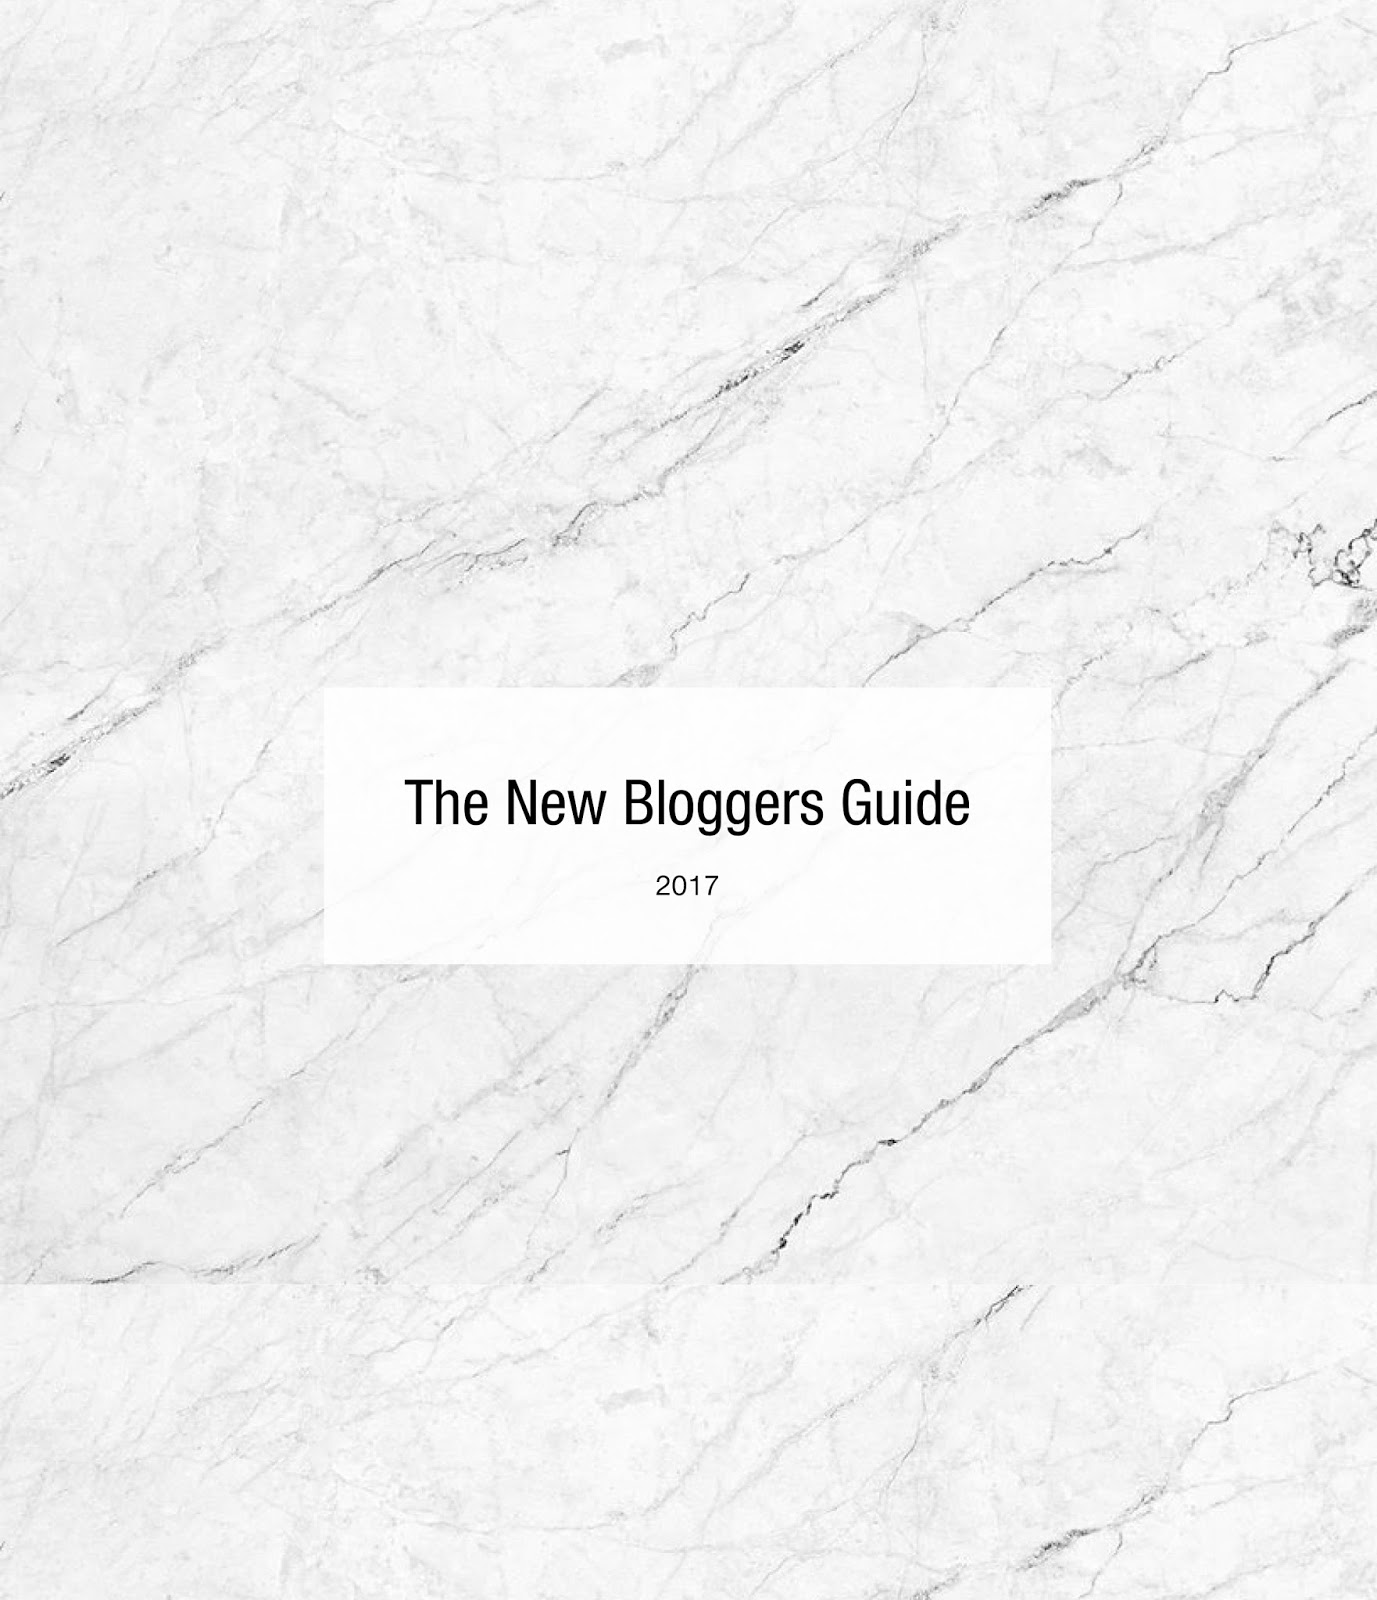 The new bloggers guide ebook